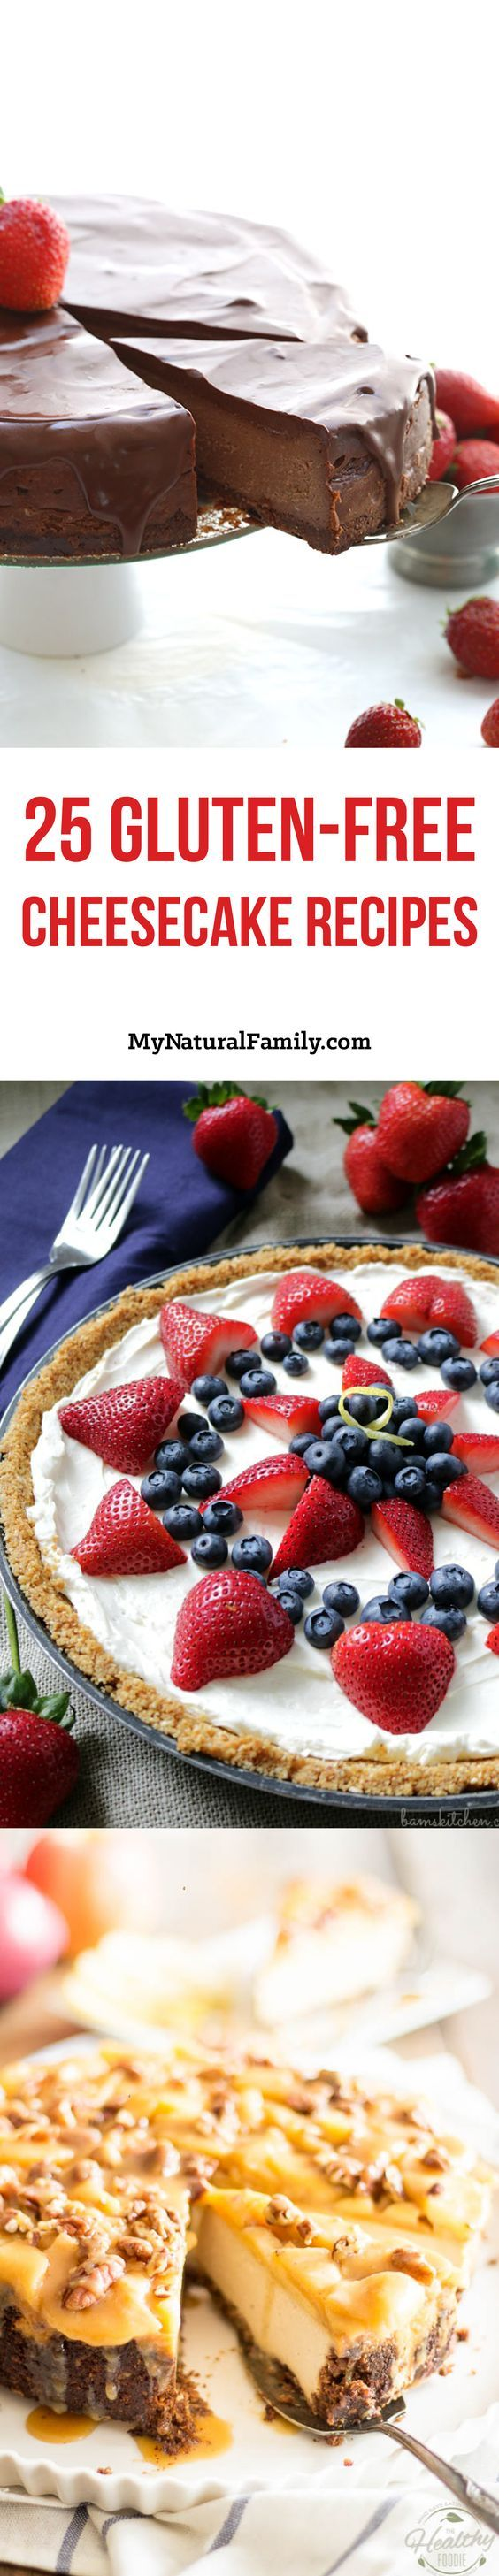 The 25 Best Gluten-Free Cheesecake Recipes - click, then scroll down the page to find all of the recipes.